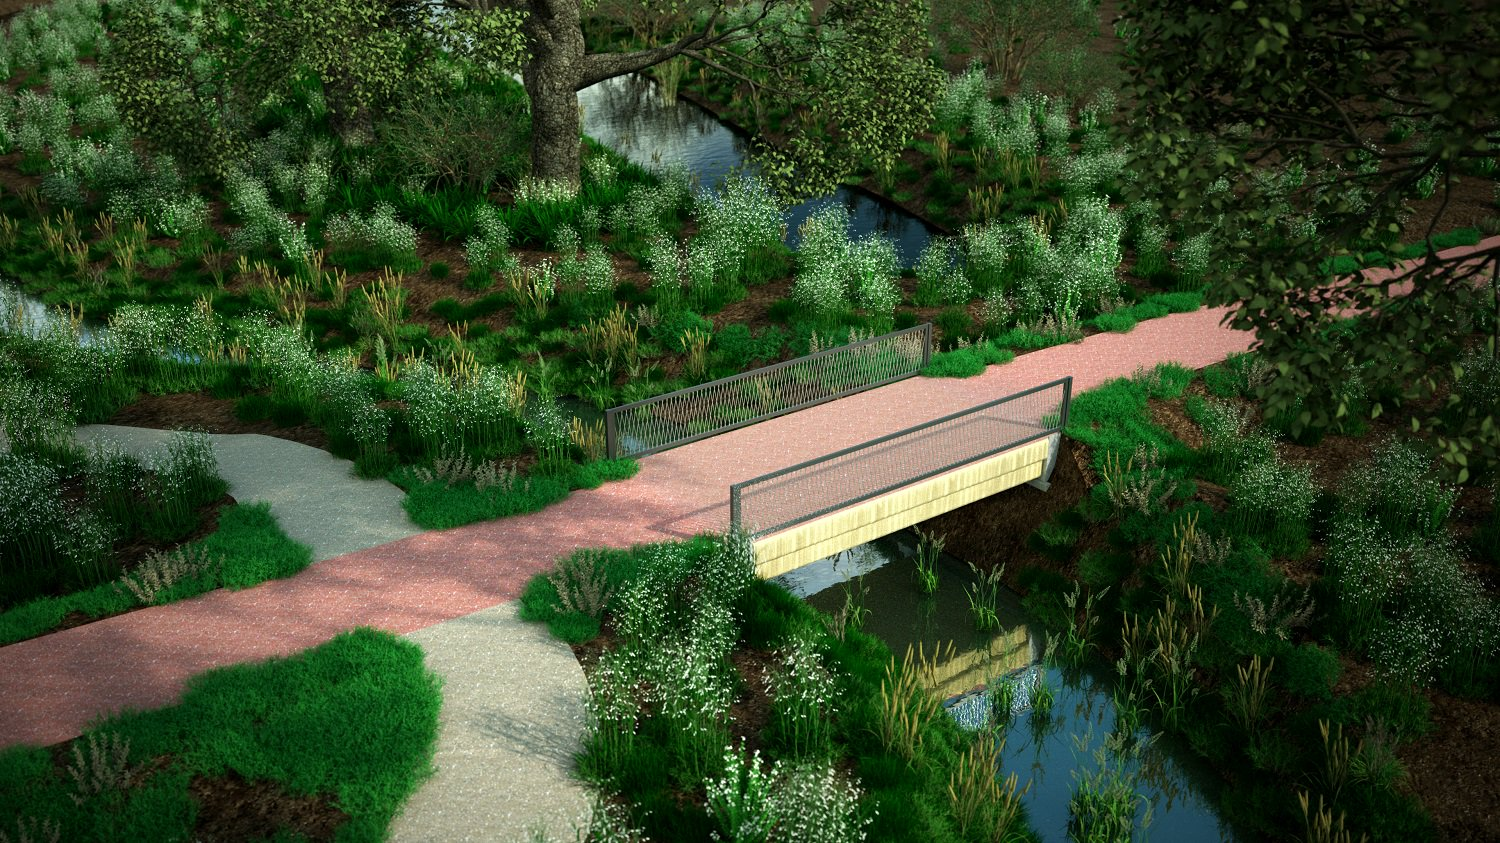 An artist's conception of how the finished bridge will look. Image via BAM Construction.